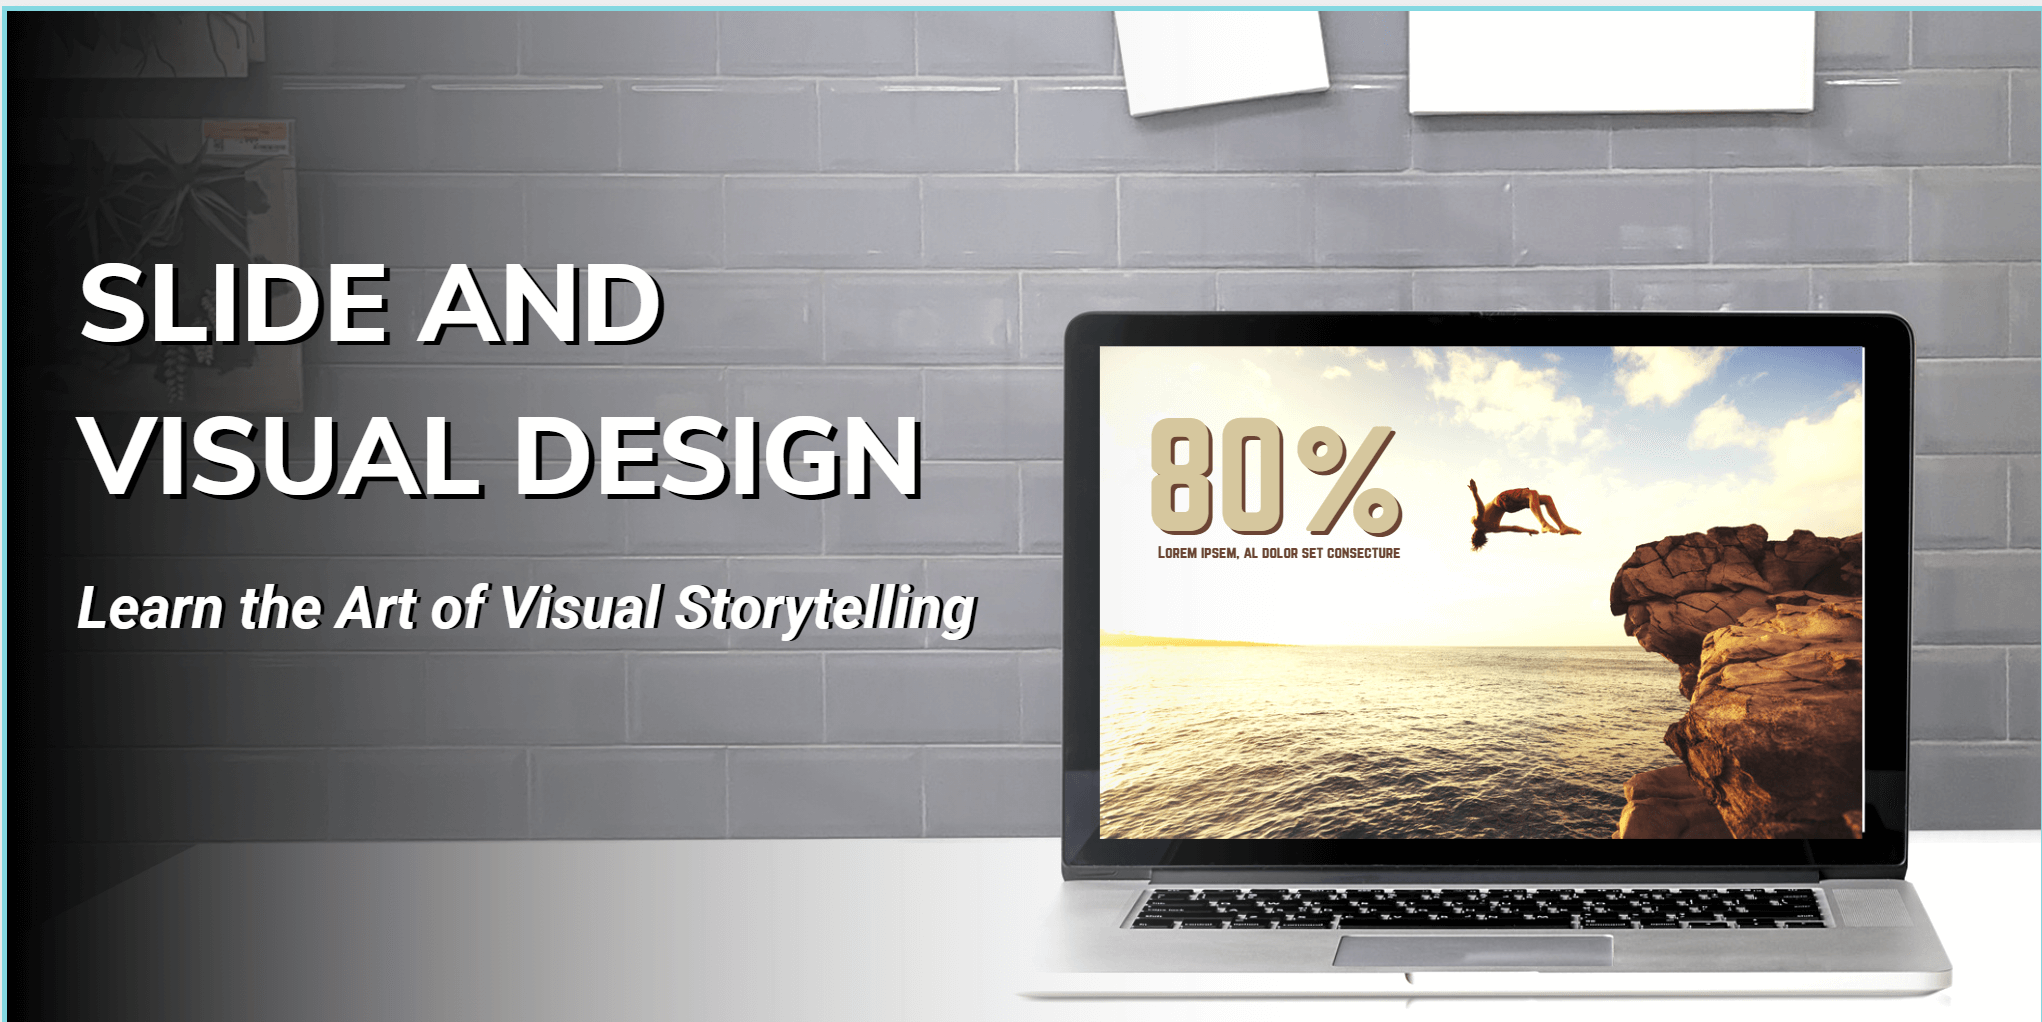 slide and visual design live online class